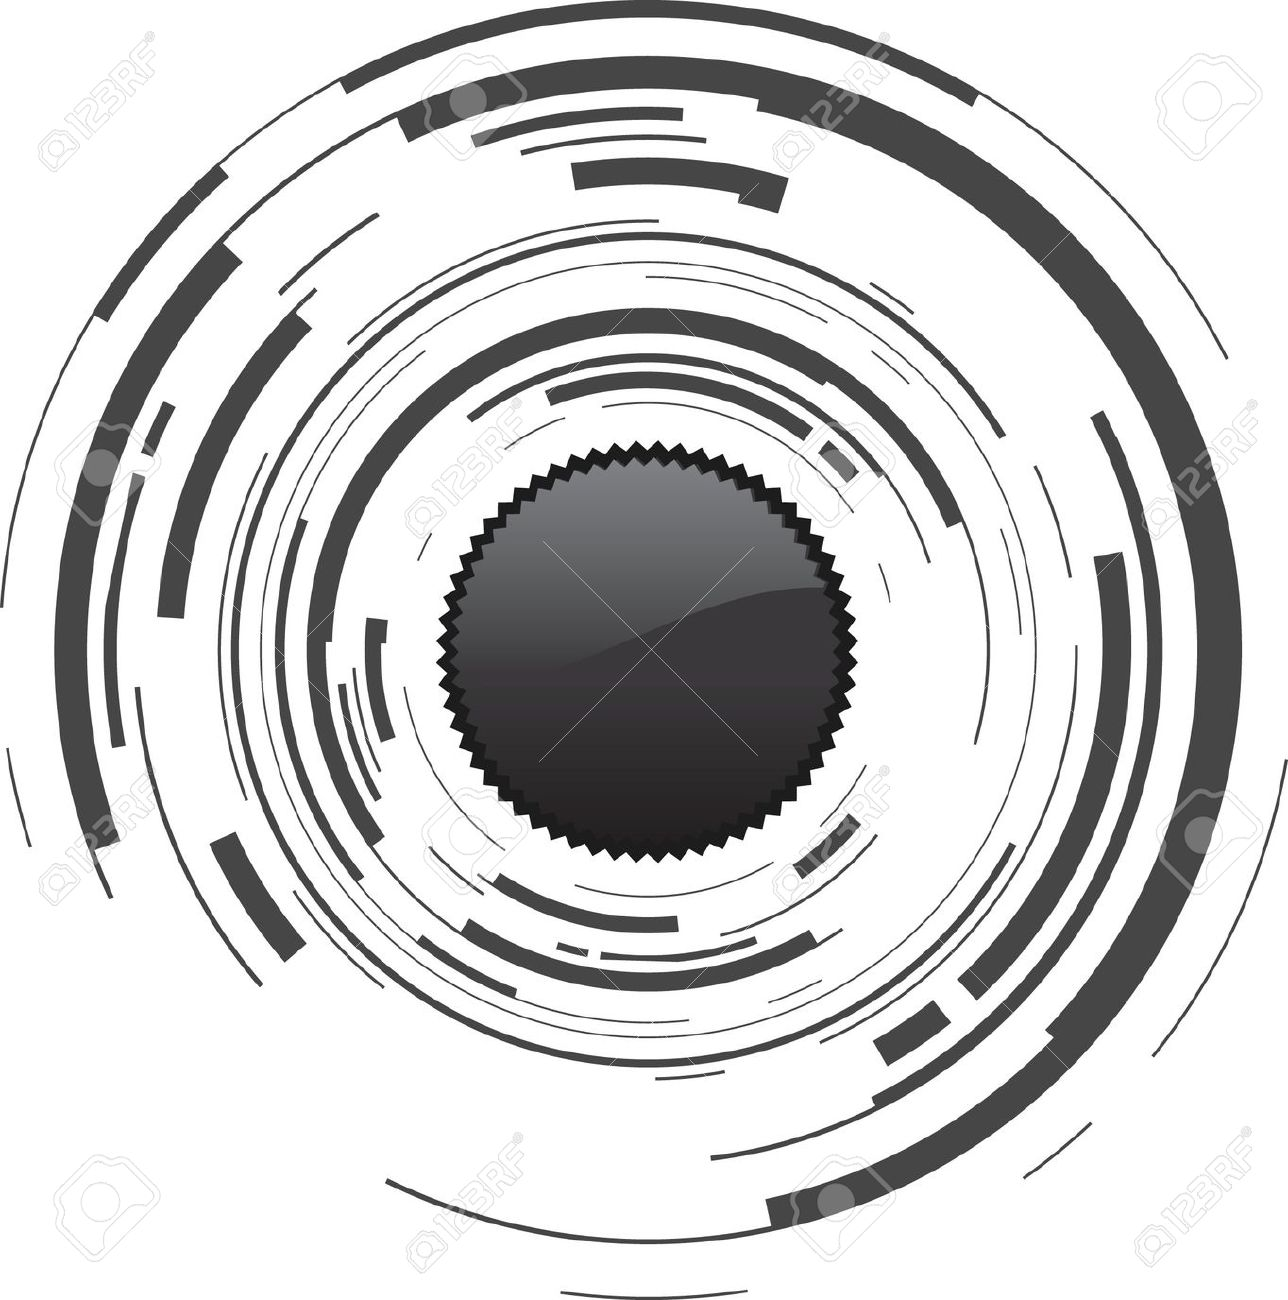 Camera Lens Clipart Black And White.